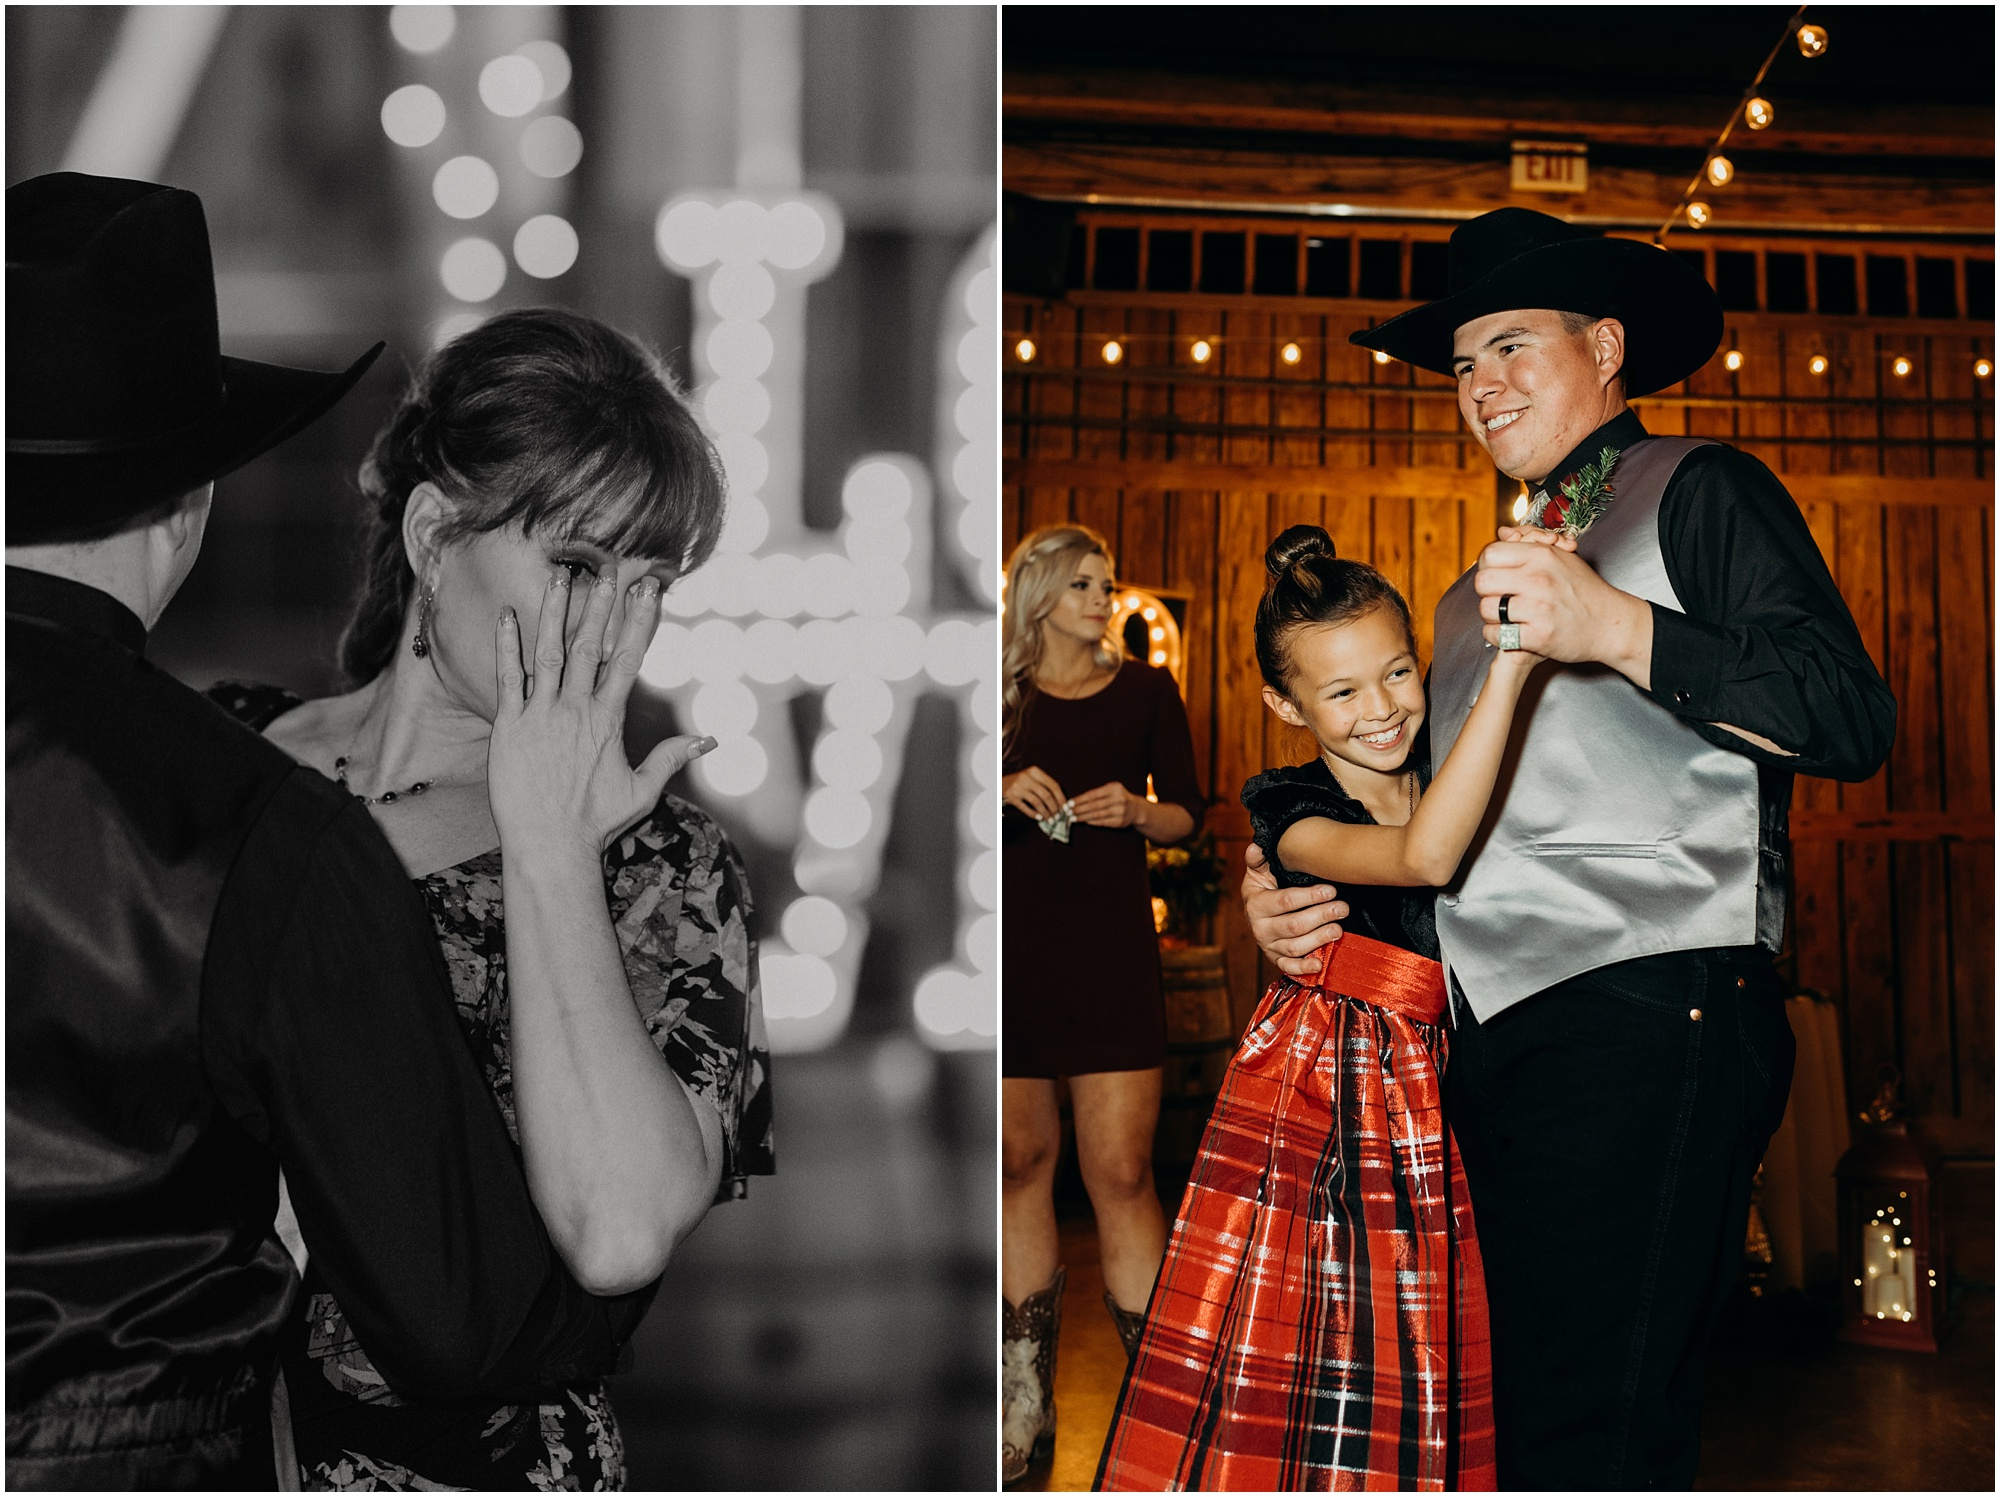 Groom has an emotional dance with his mother during a barn reception for a Country Christmas wedding.